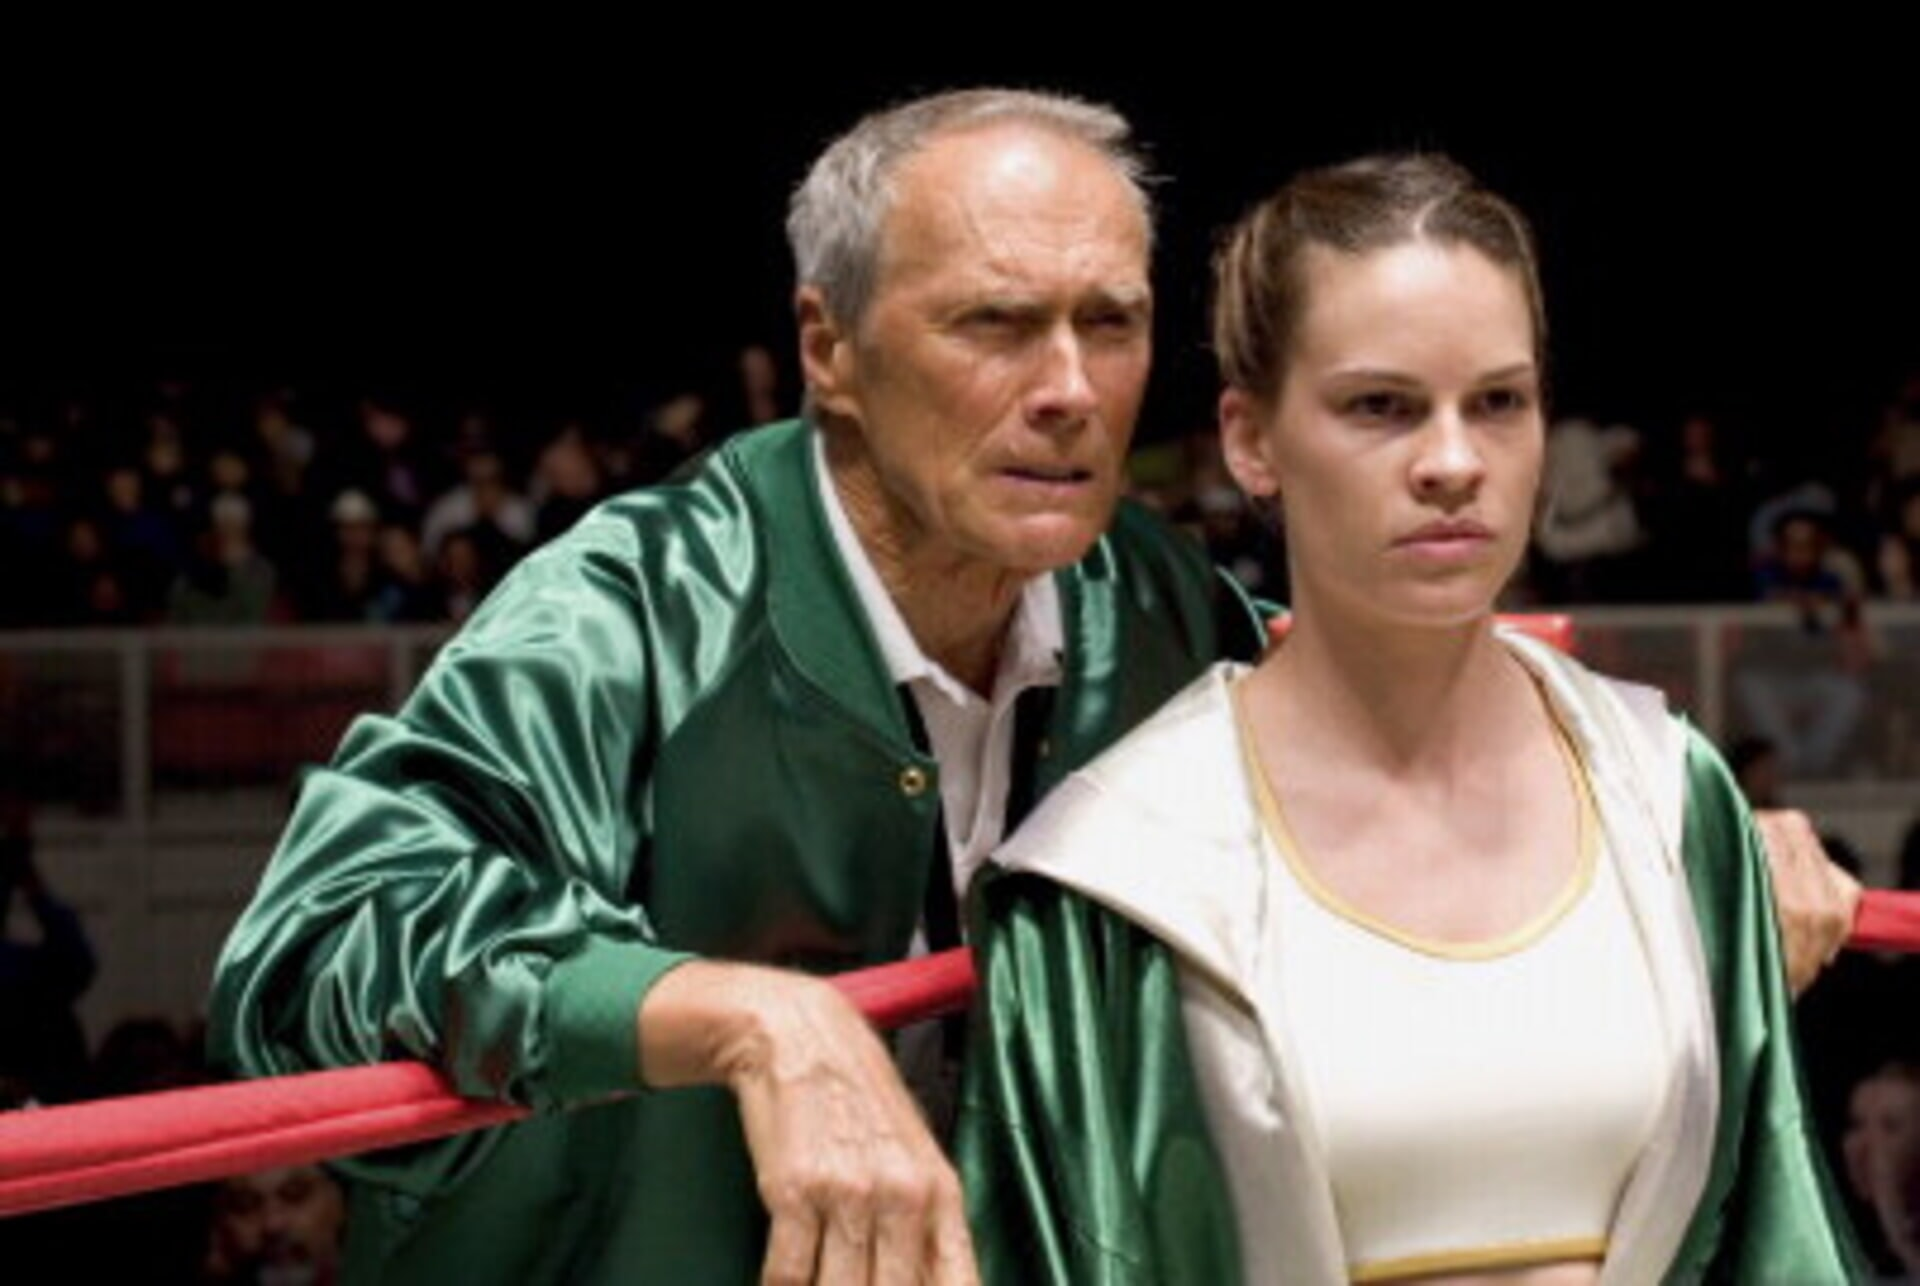 Million Dollar Baby - Image 16